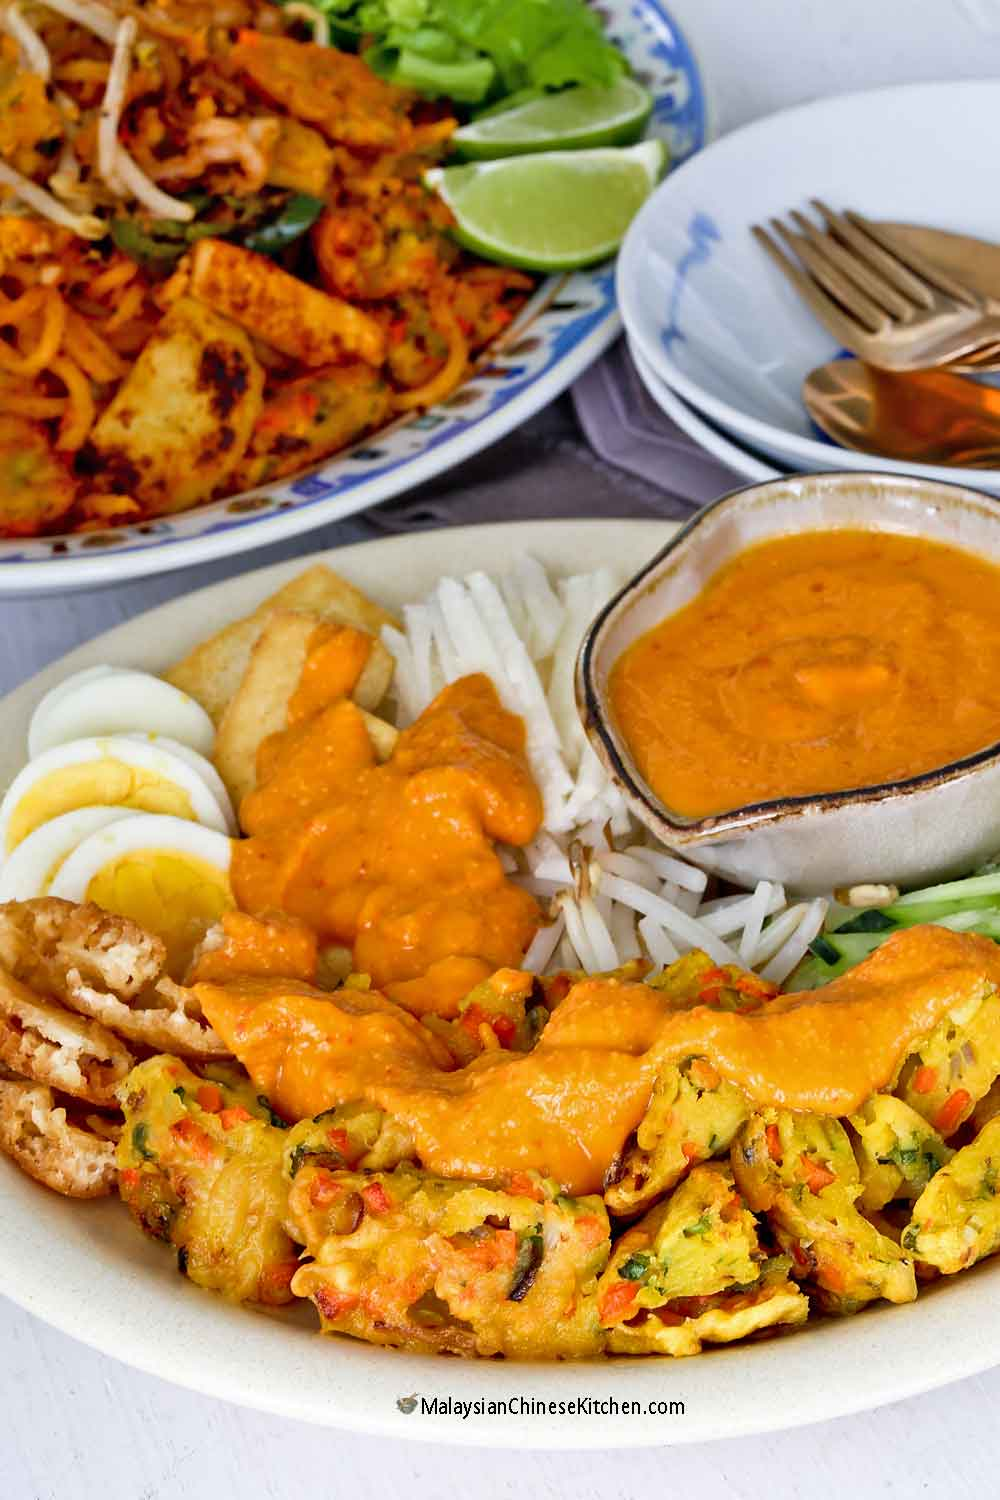 Delicious Pasembur (Malaysian Indian Rojak) with crispy fritters and squid fritters.